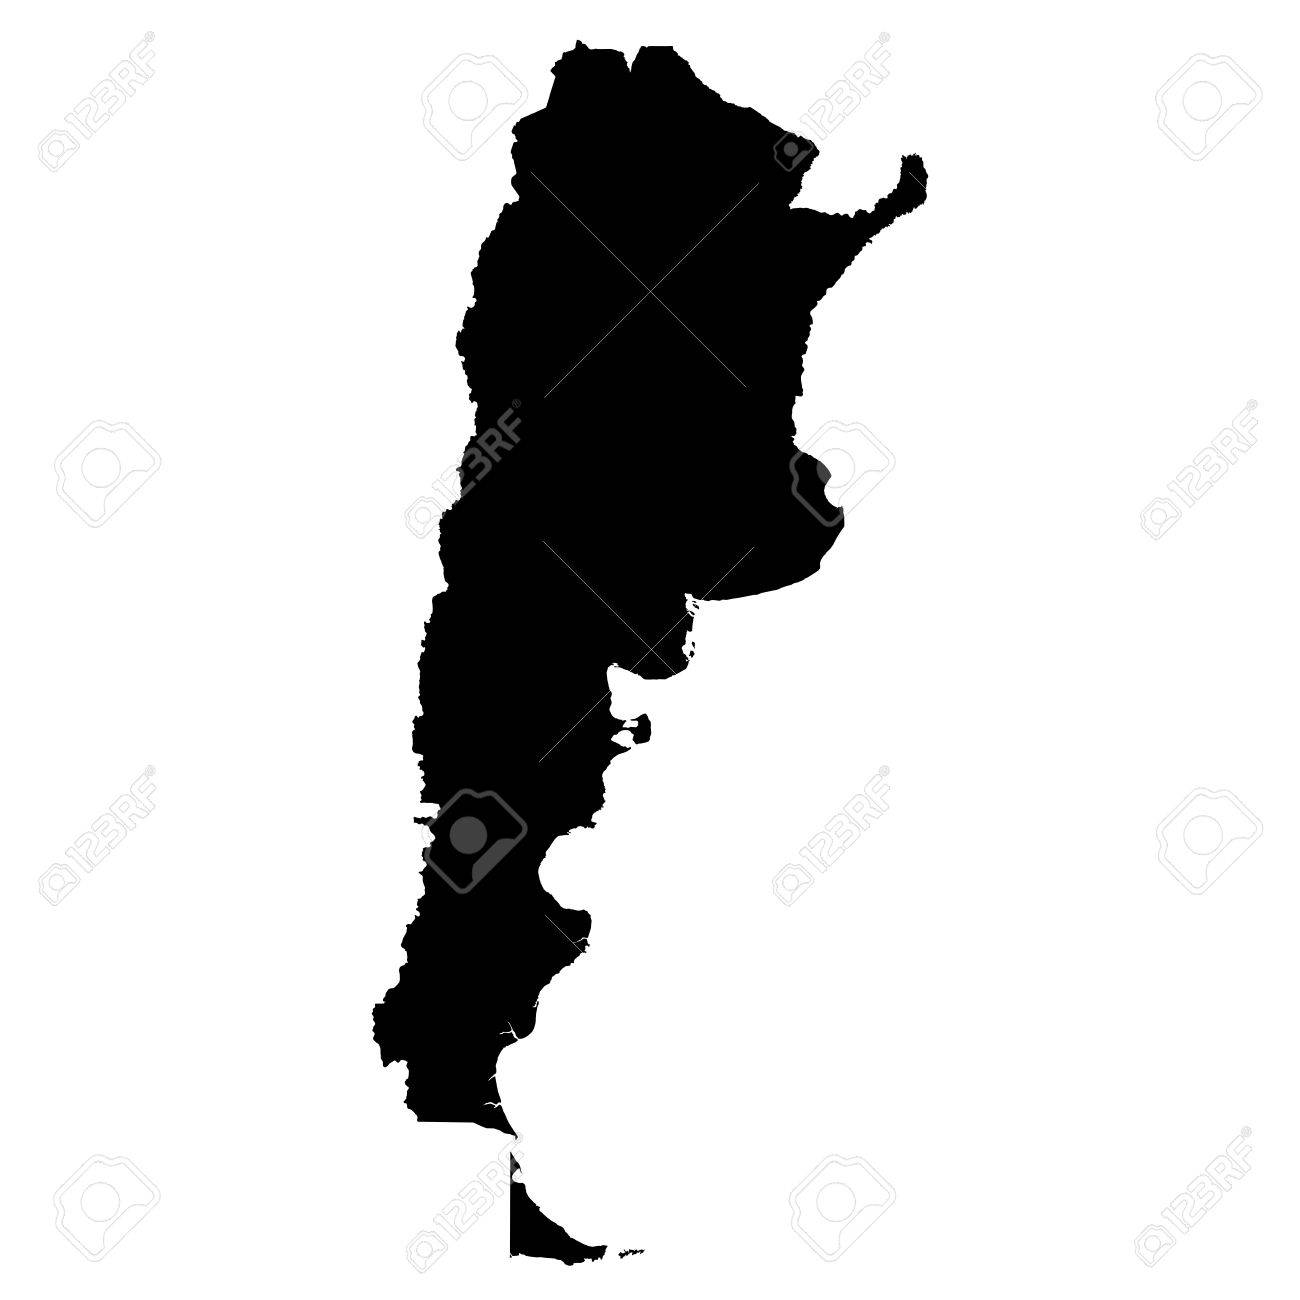 Argentina Black Silhouette Map Outline Isolated On White D - Argentina map outline